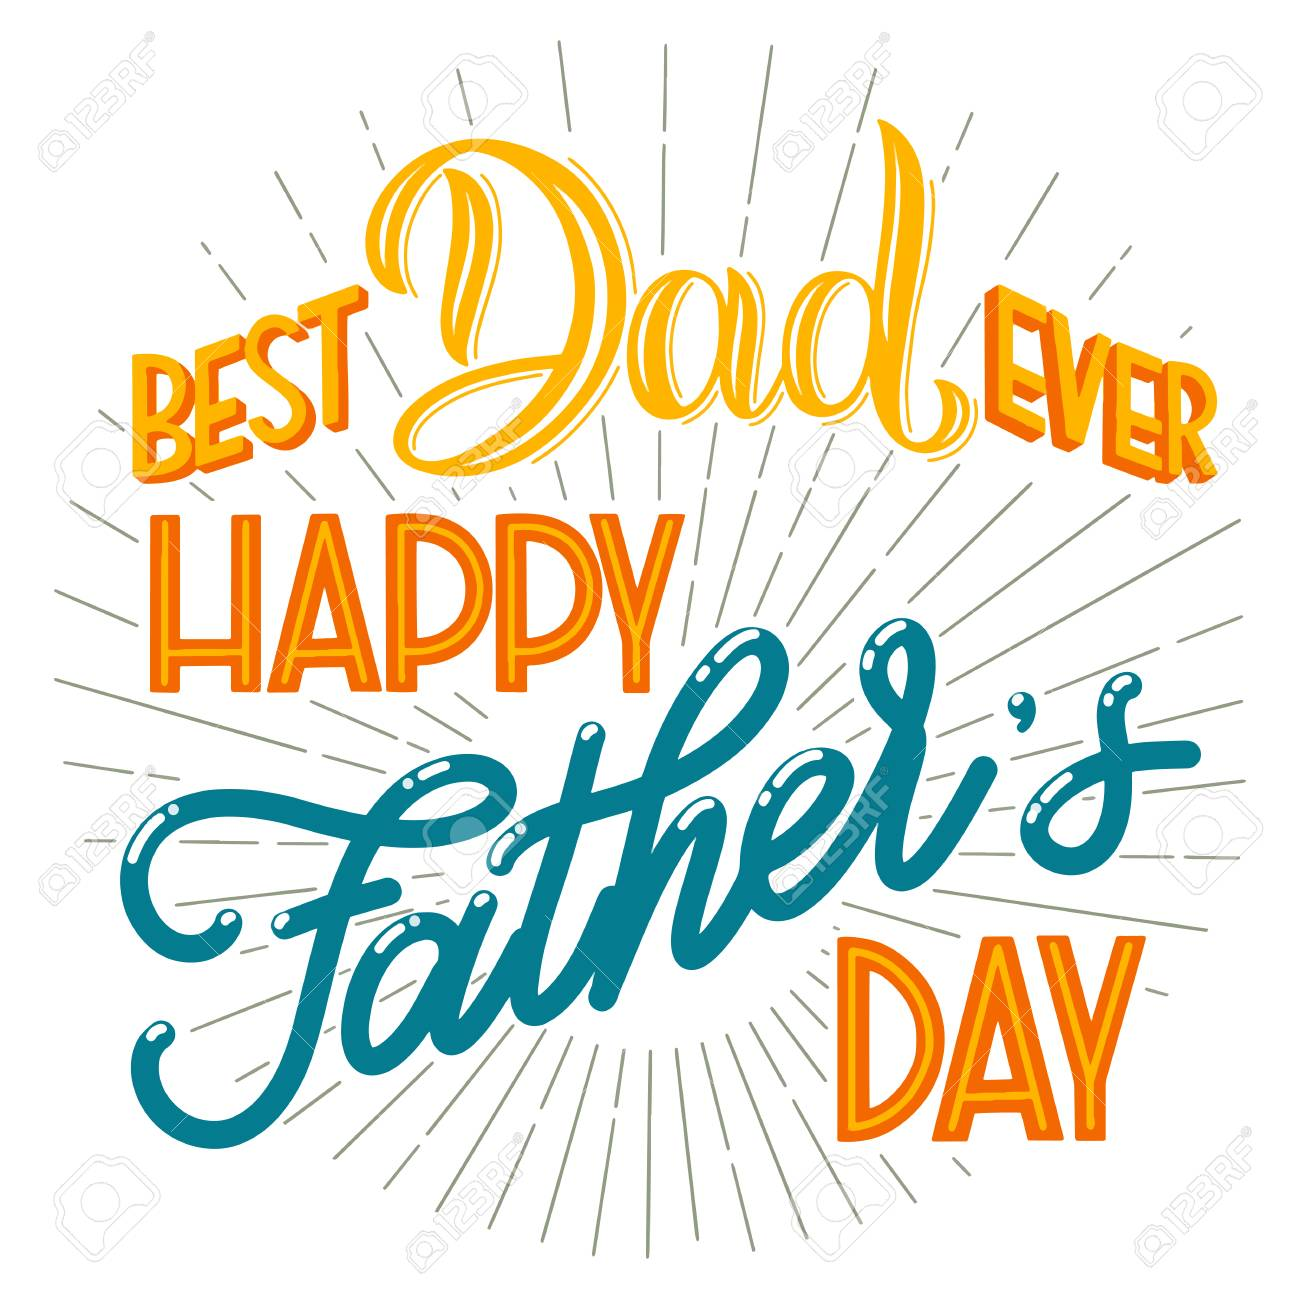 Happy father day lettering greeting card design hand drawn greeting card design hand drawn text elements for invitations m4hsunfo